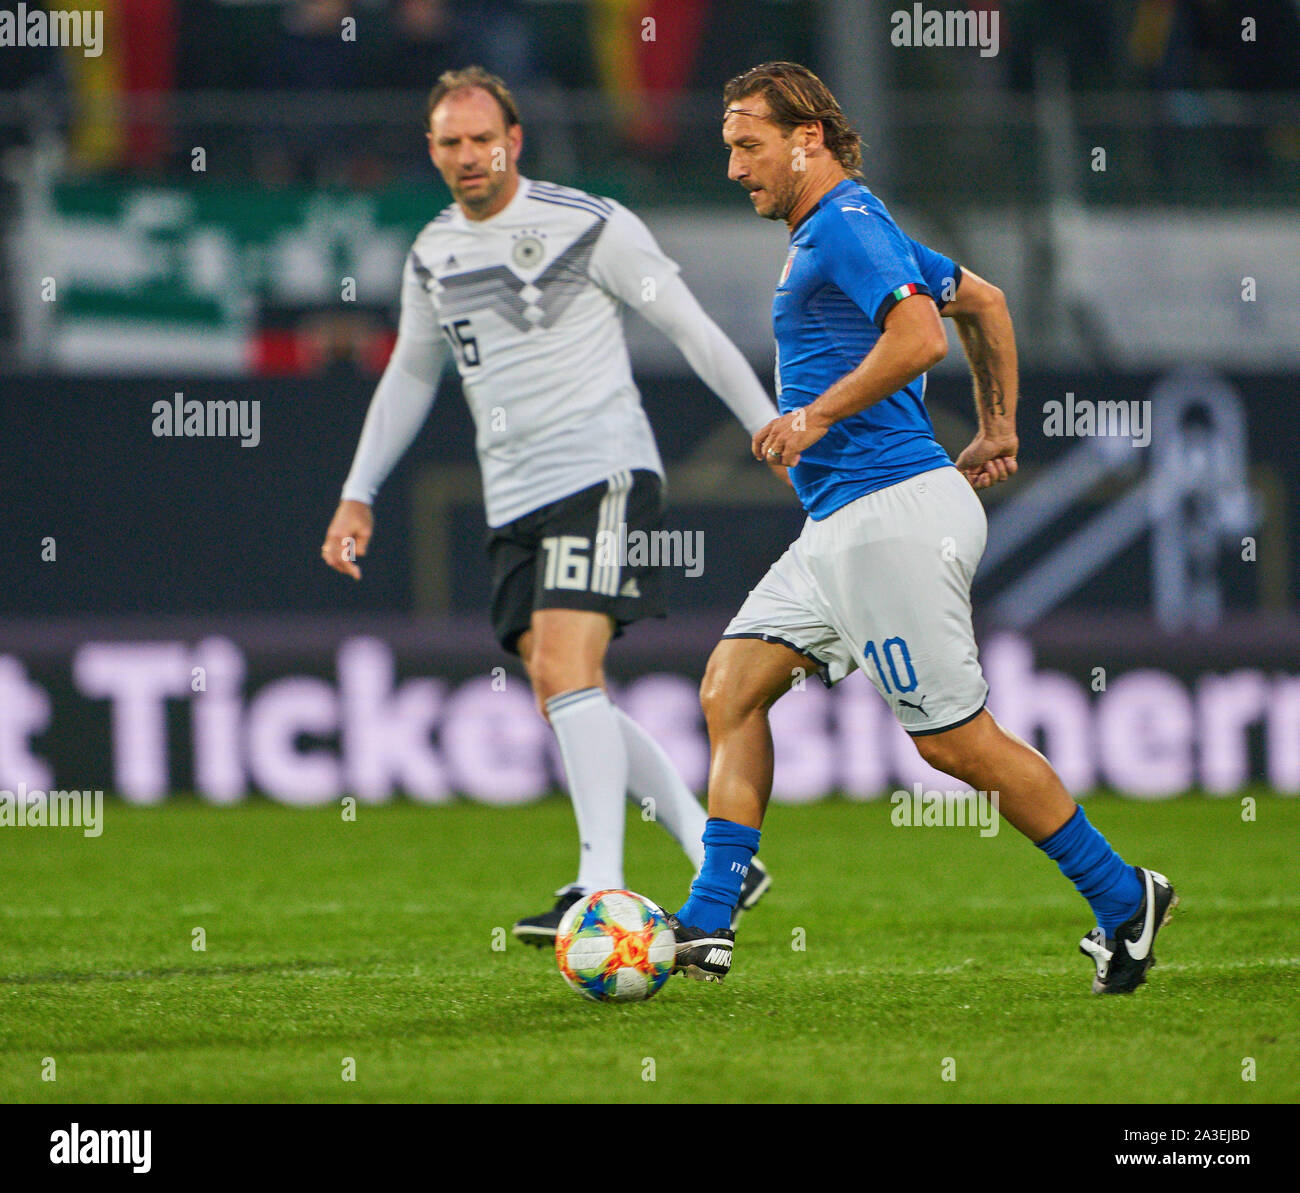 Furth, Germany. 7th Oct, 2019. Francesco TOTTO  compete for the ball, tackling, duel, header, zweikampf, action, fight against Jens  NOWOTNY DFB ALL-STARS - ITALY ALL STARS  1.German Soccer League , Fürth, October 07, 2019  Season 2019/2020 © Peter Schatz / Alamy Live News Stock Photo